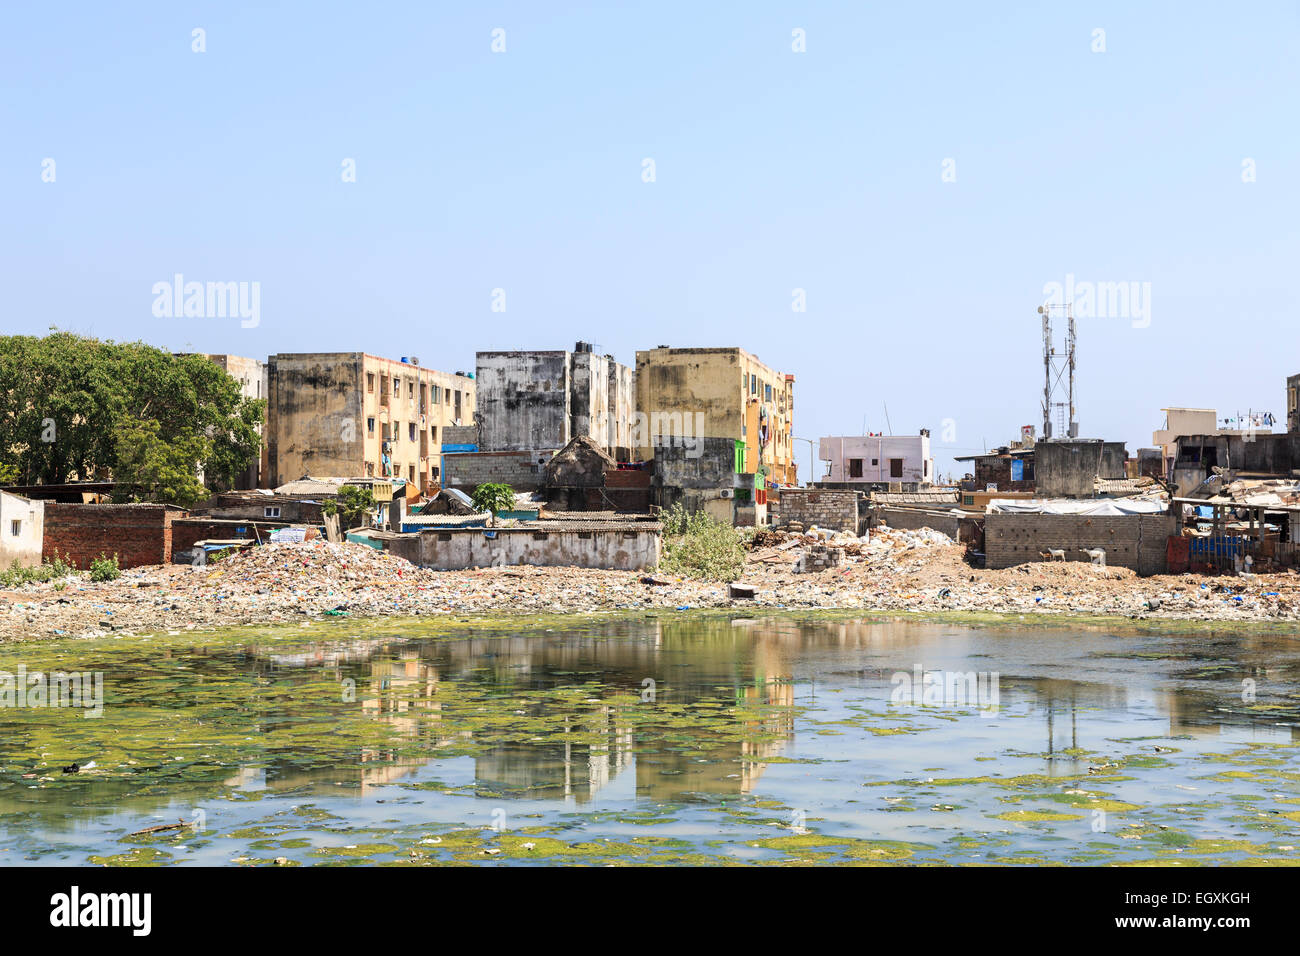 Third world poverty lifestyle: Poor riverside slum tenements on the banks of the polluted Adyar River estuary in - Stock Image